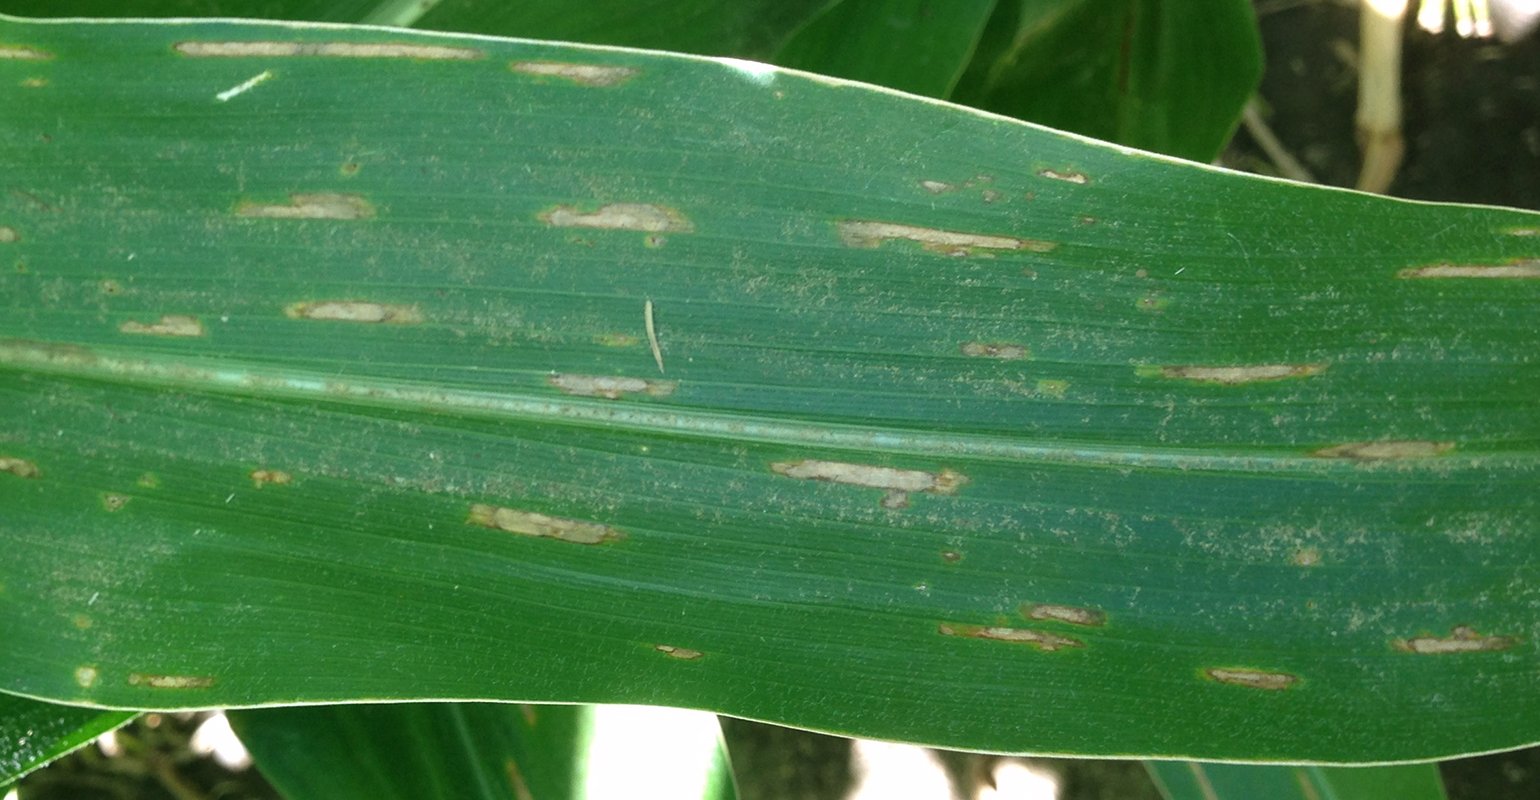 Gray Leaf Spot on corn leaf